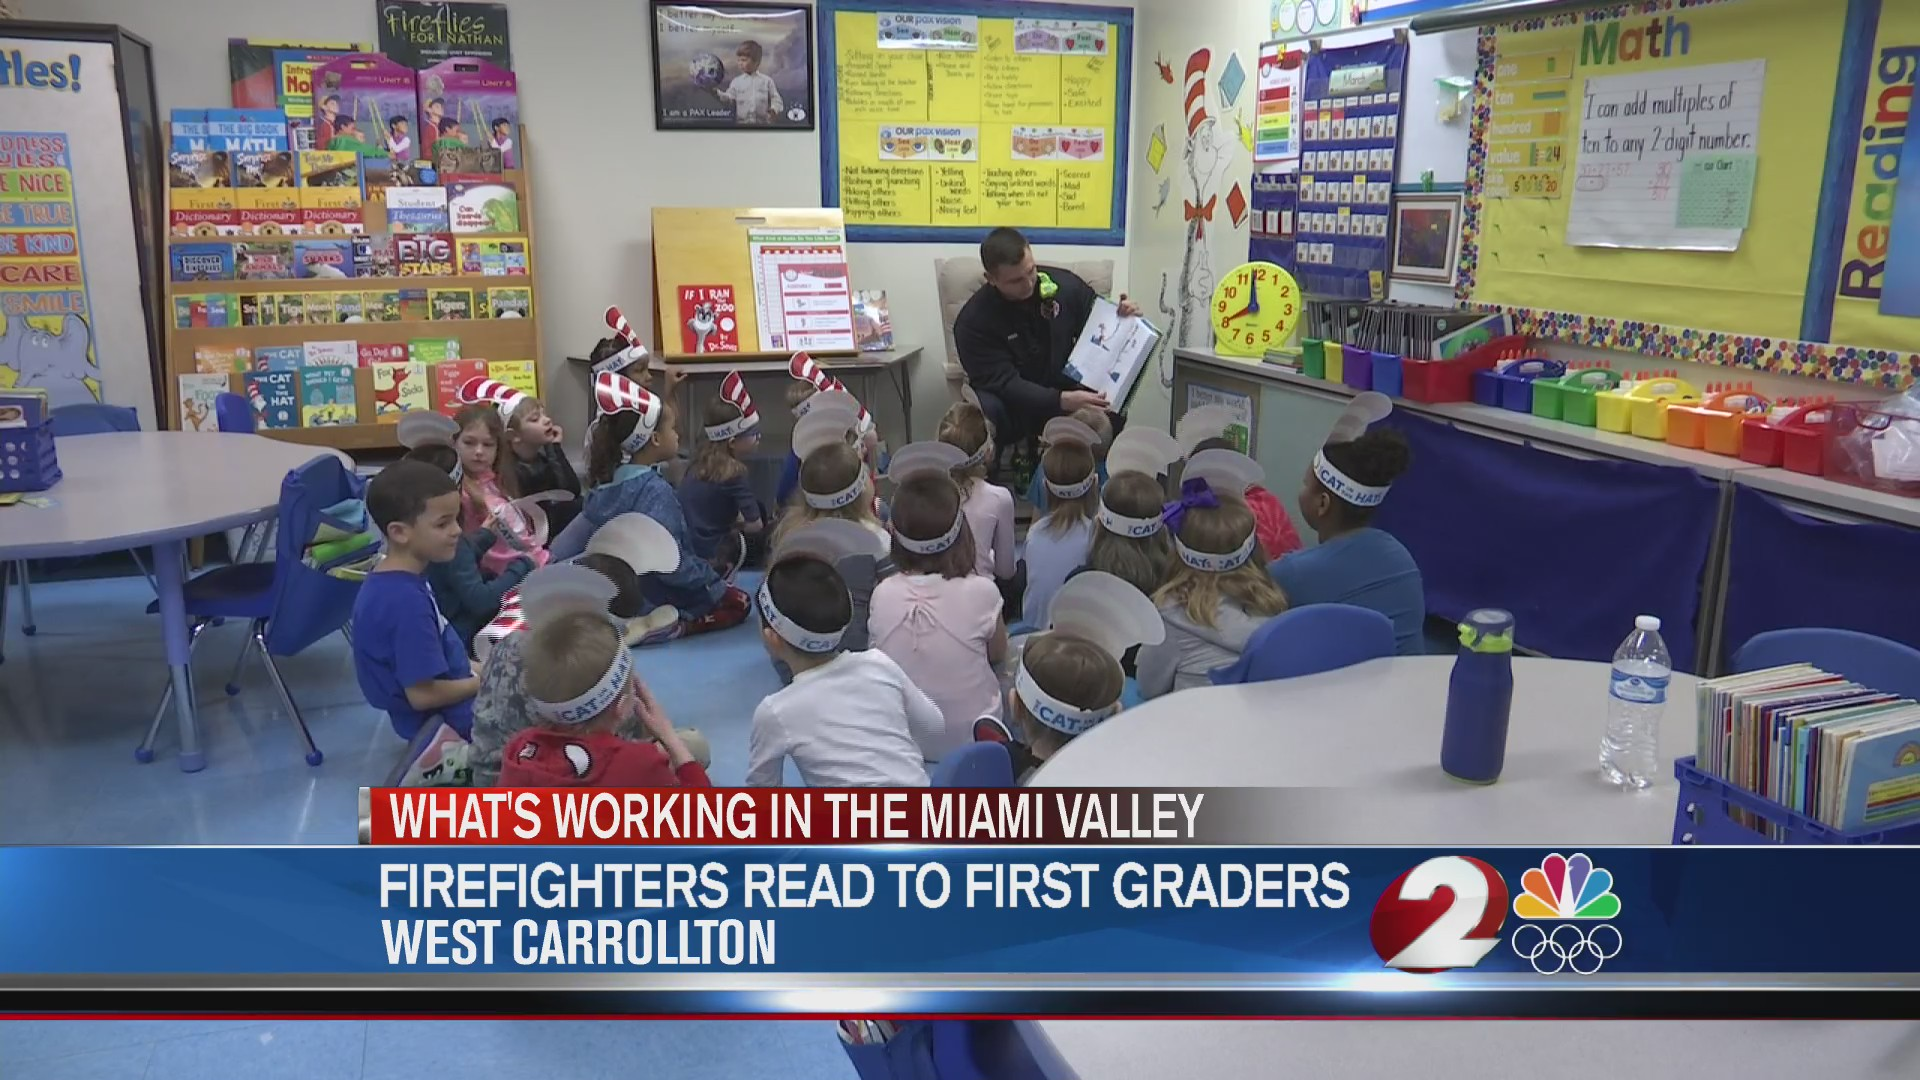 Firefighters read to first graders